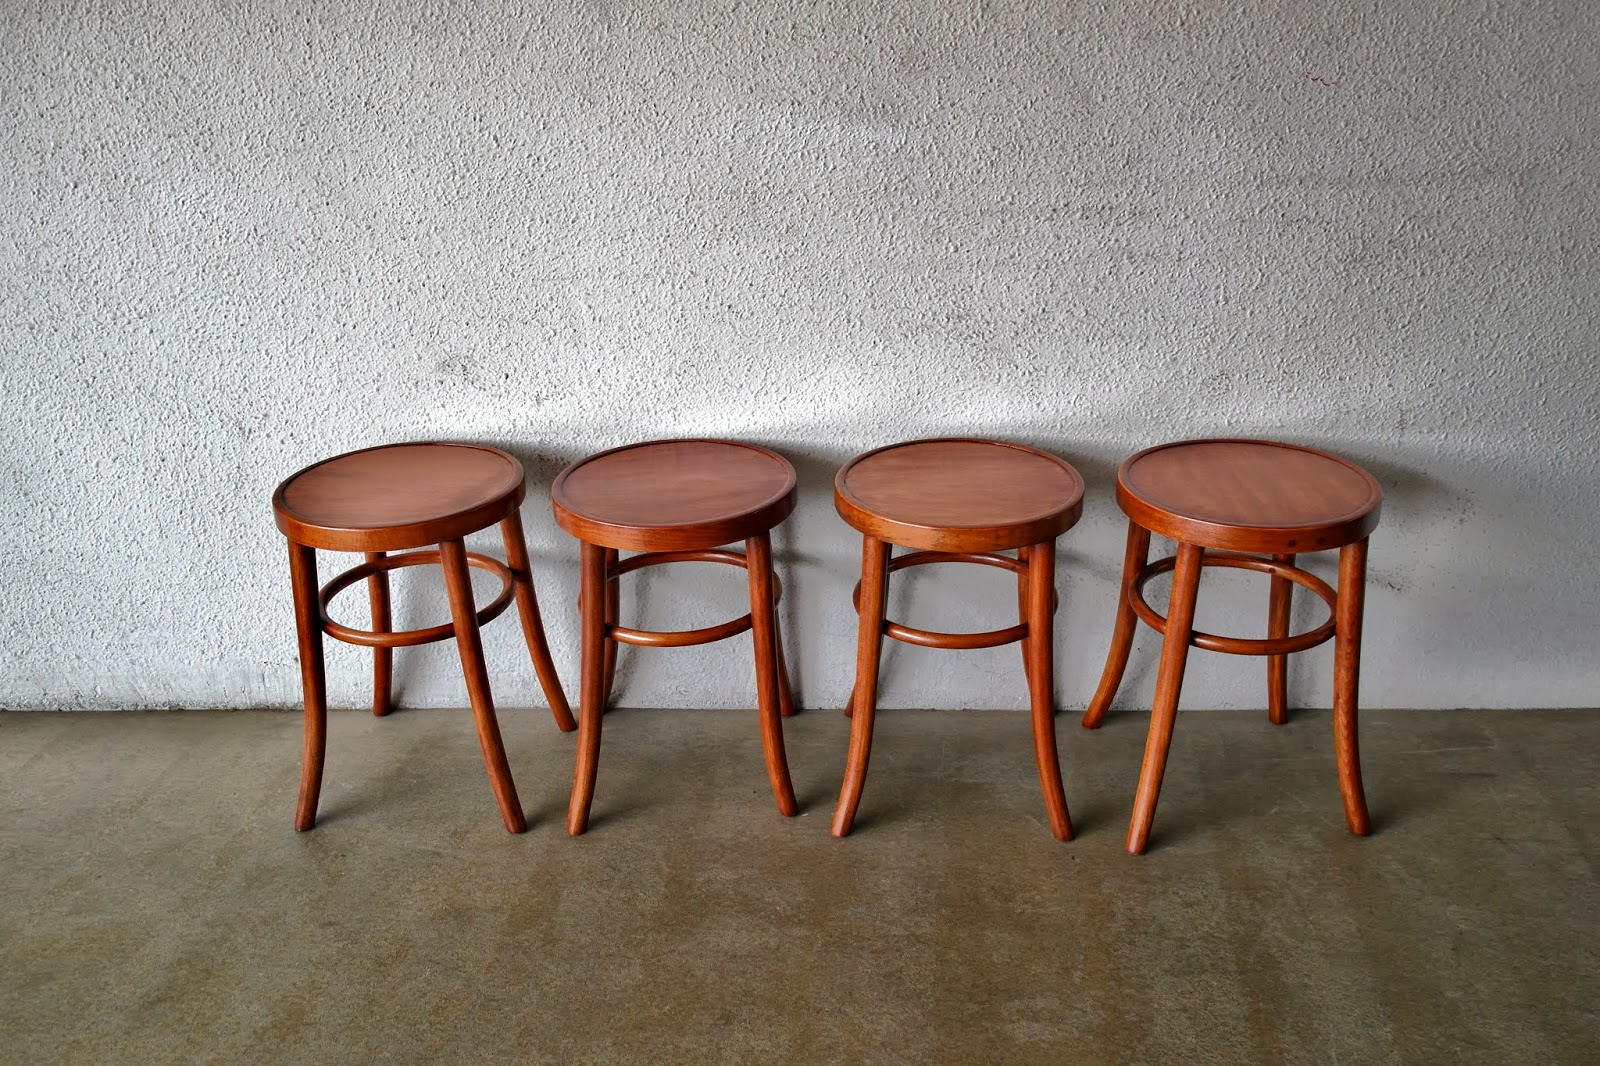 bar stool chair malaysia the chronicles of narnia silver trailer second charm kopitiam chairs stools and